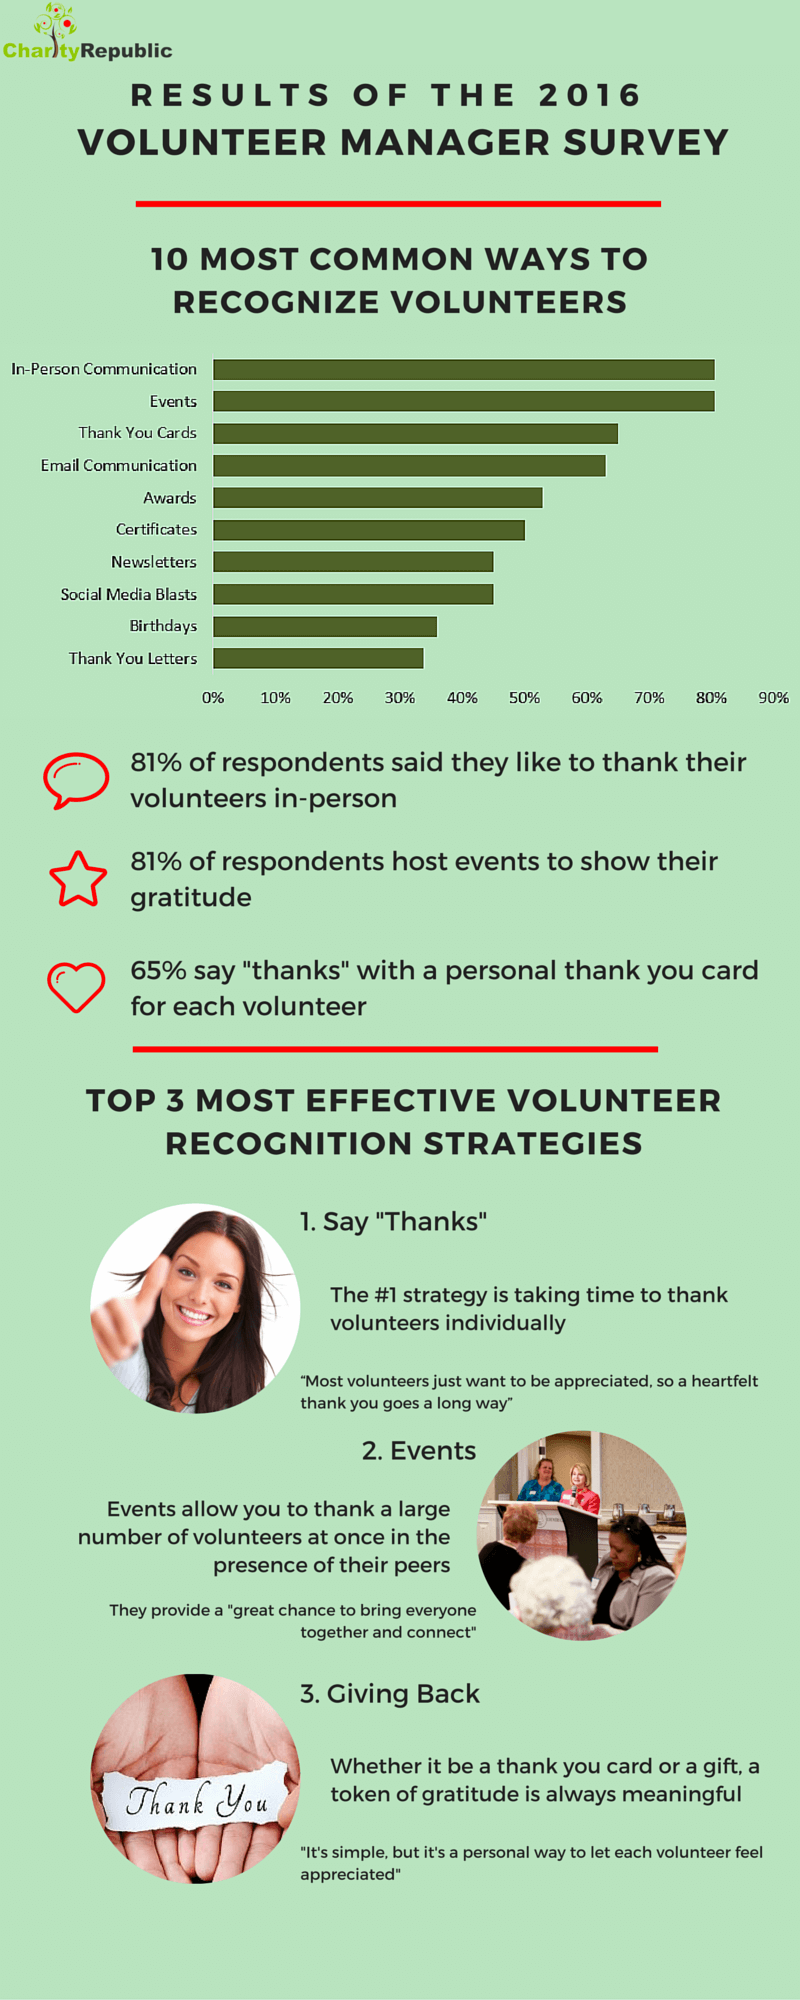 Volunteer Recognition Survey Infographic - Charity Republic (Apr 2016)